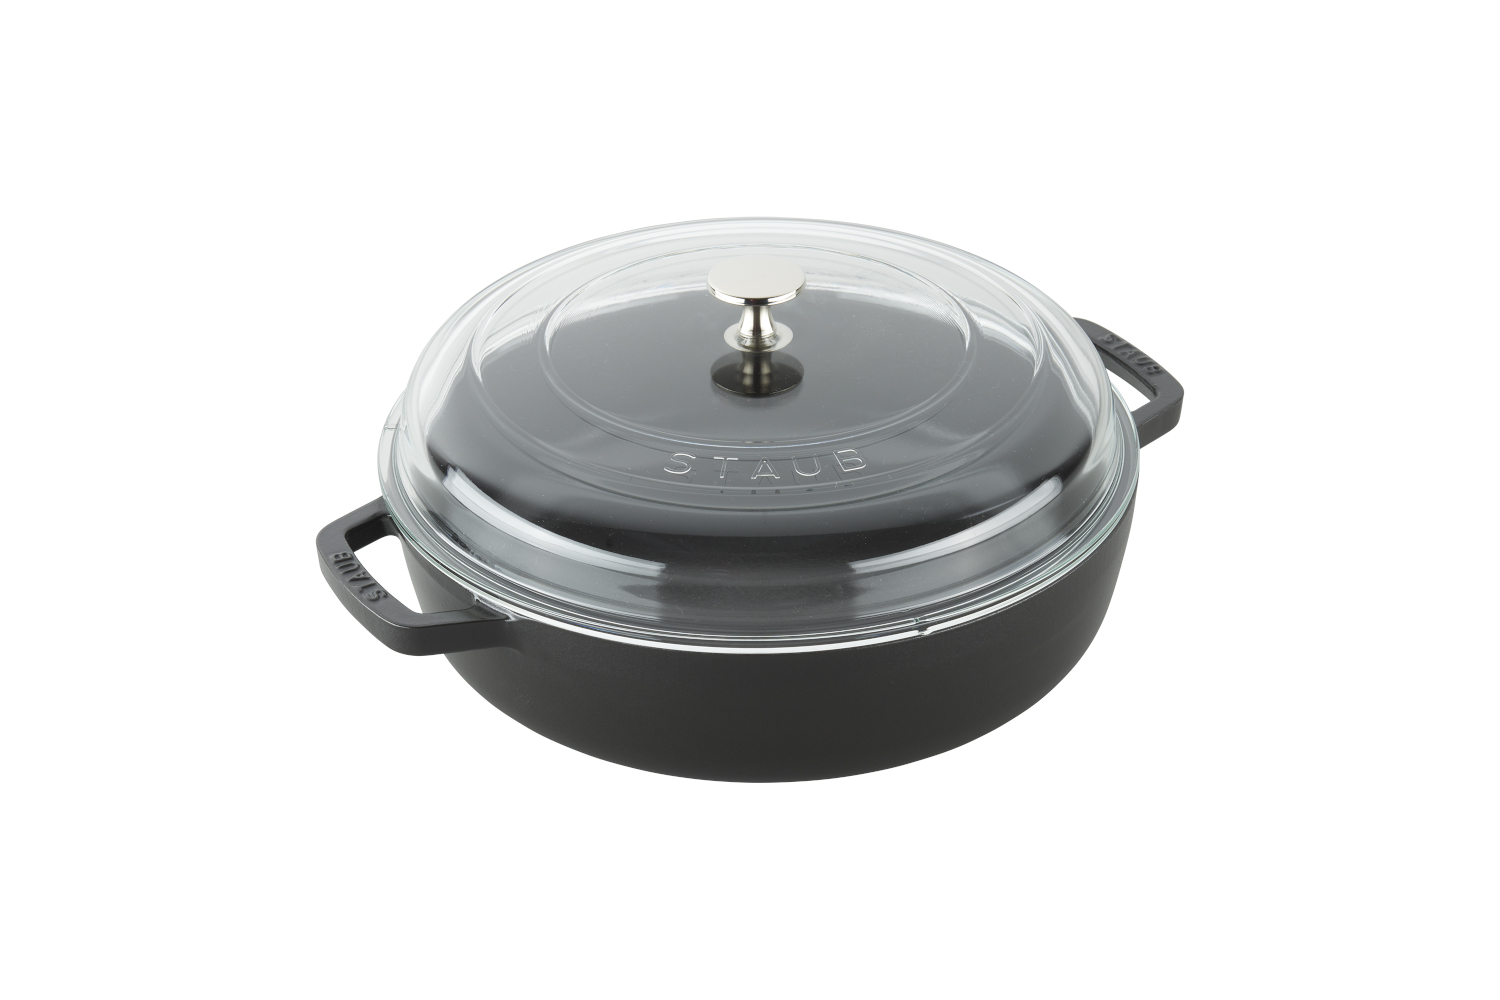 Staub Cast Iron 4 qt. Universal Deluxe Pan with Glass Lid - Matte Black